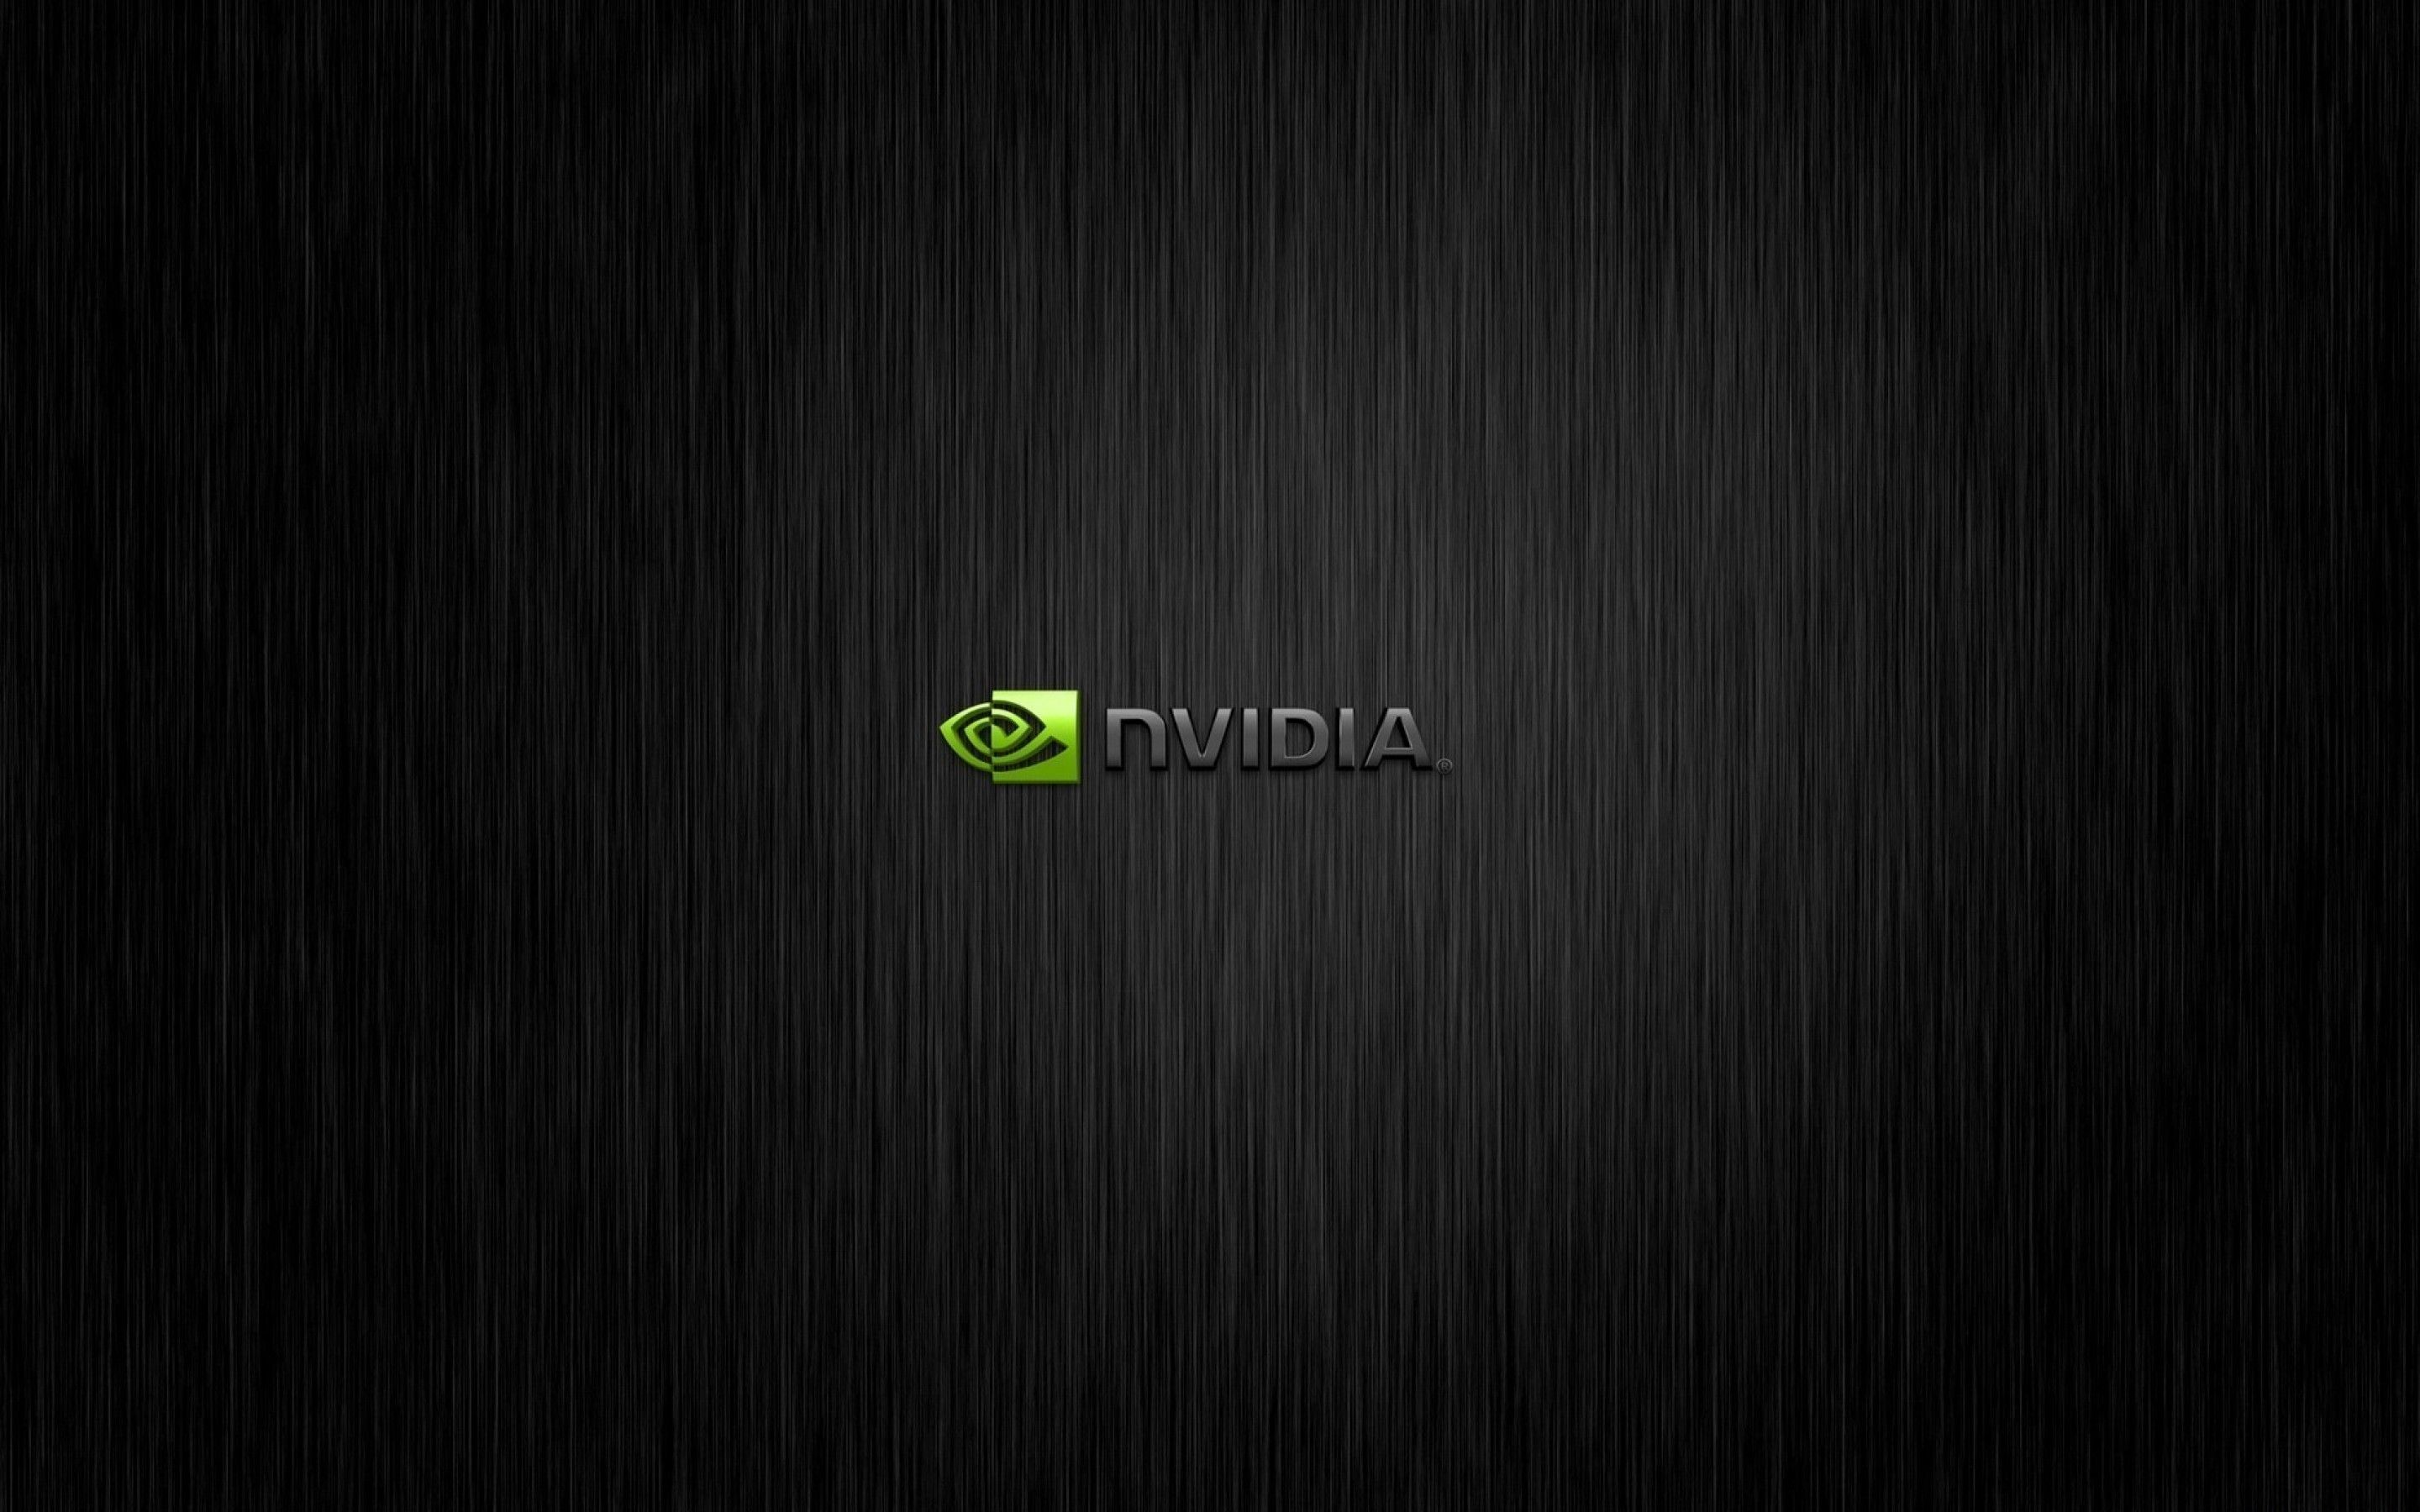 Nvidia Wallpapers, Pictures, Images - 517.5KB